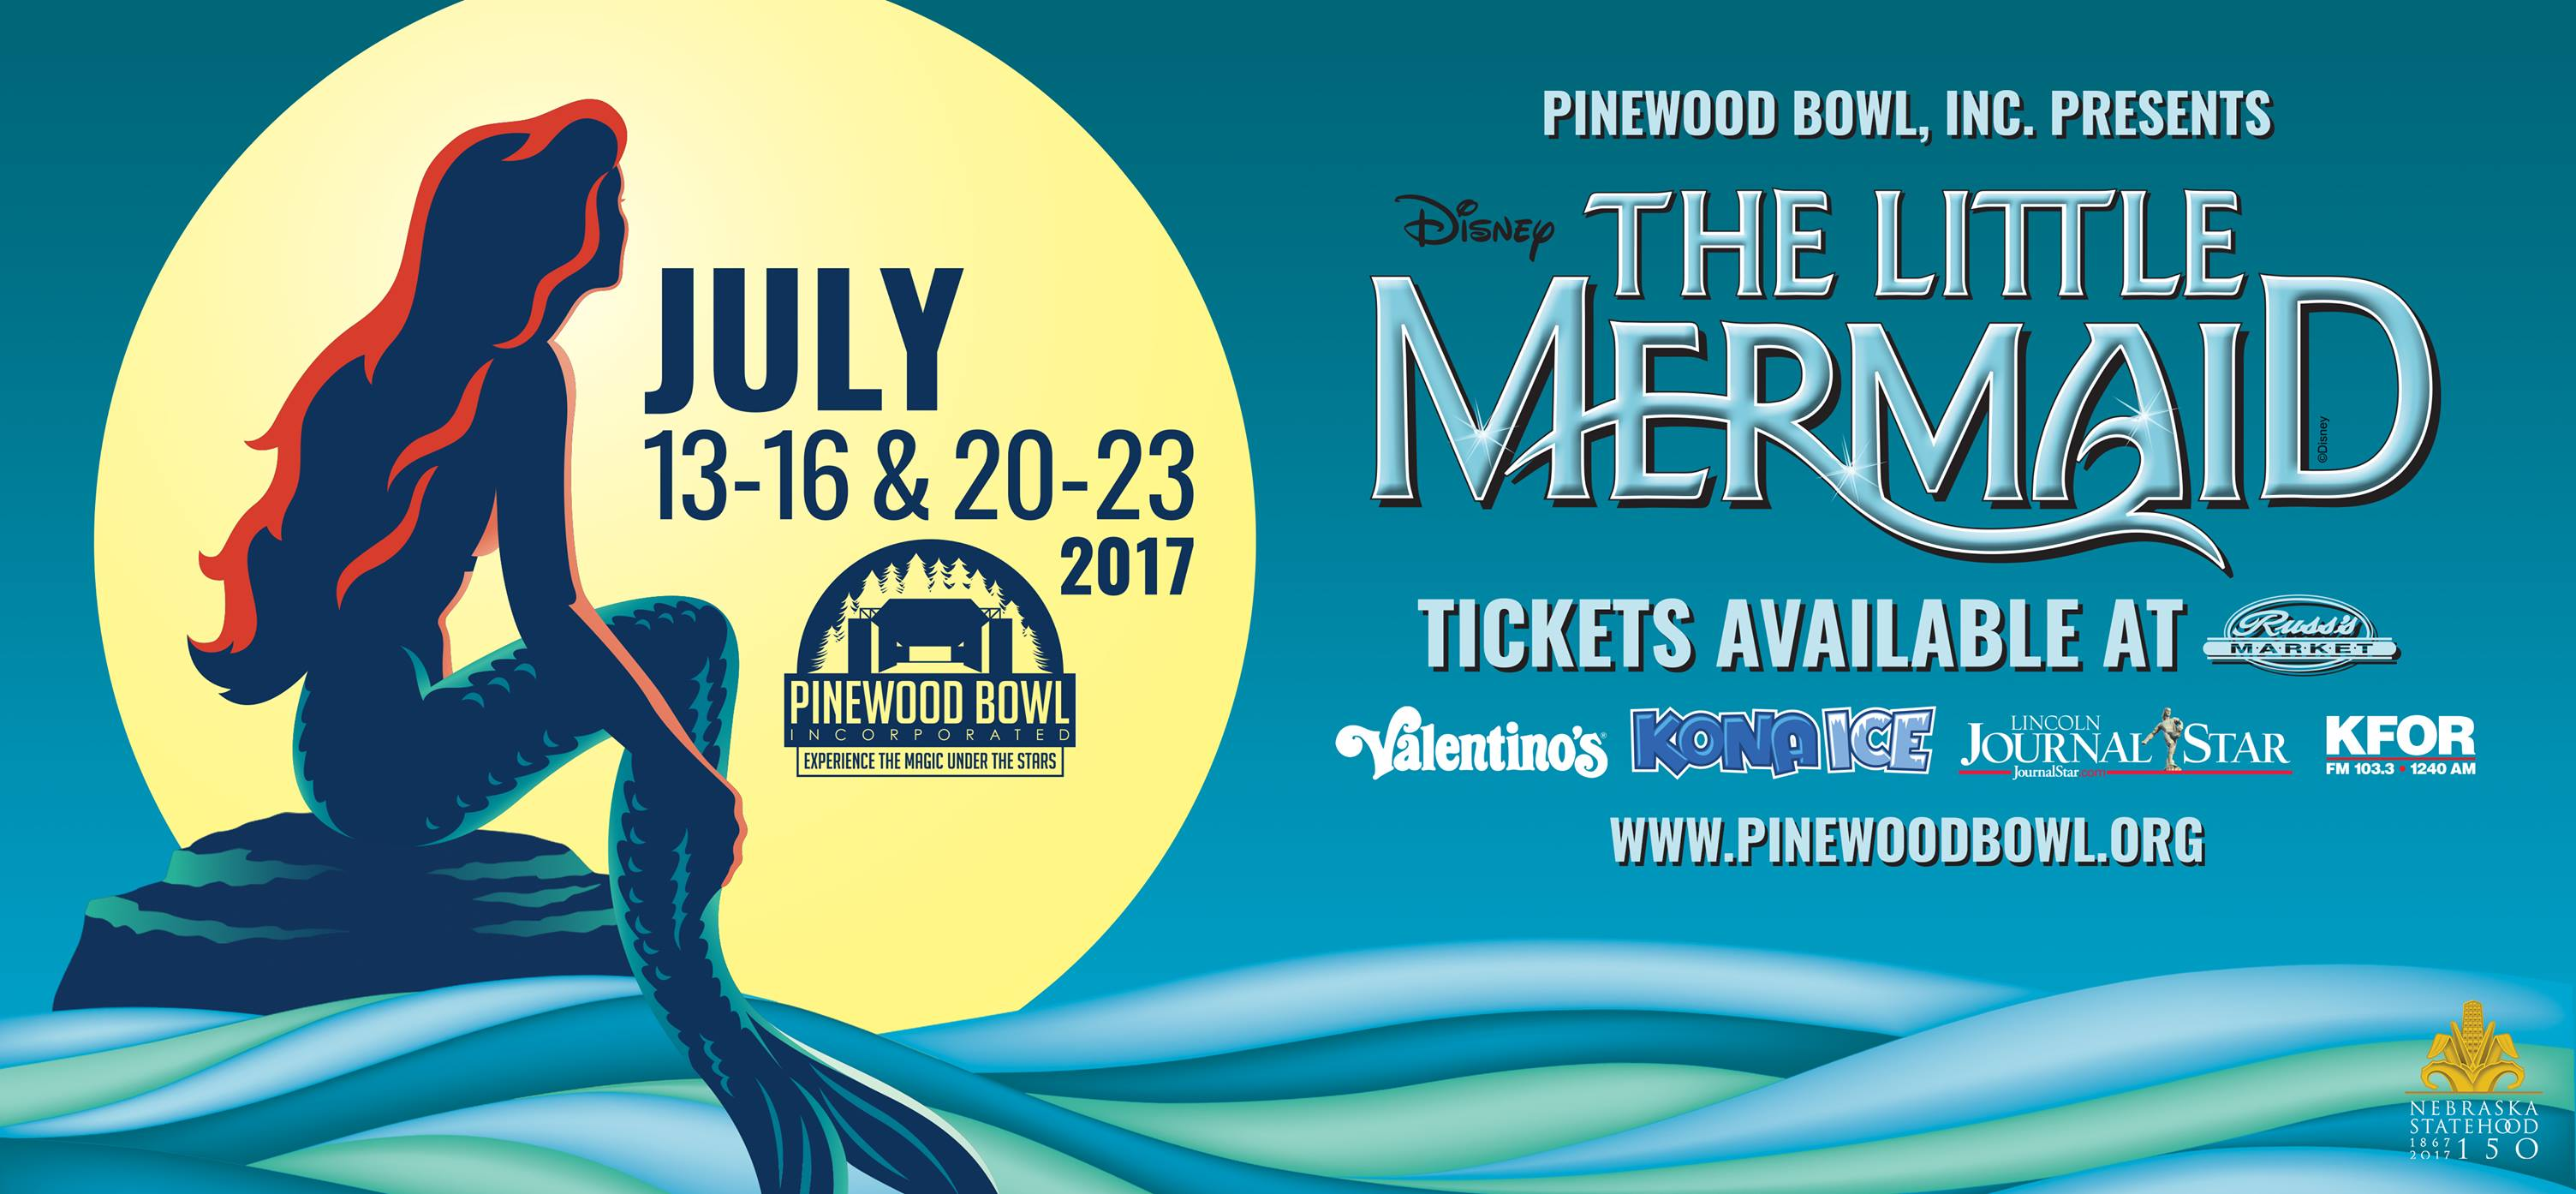 Pinewood Bowl Theater The Little Mermaid